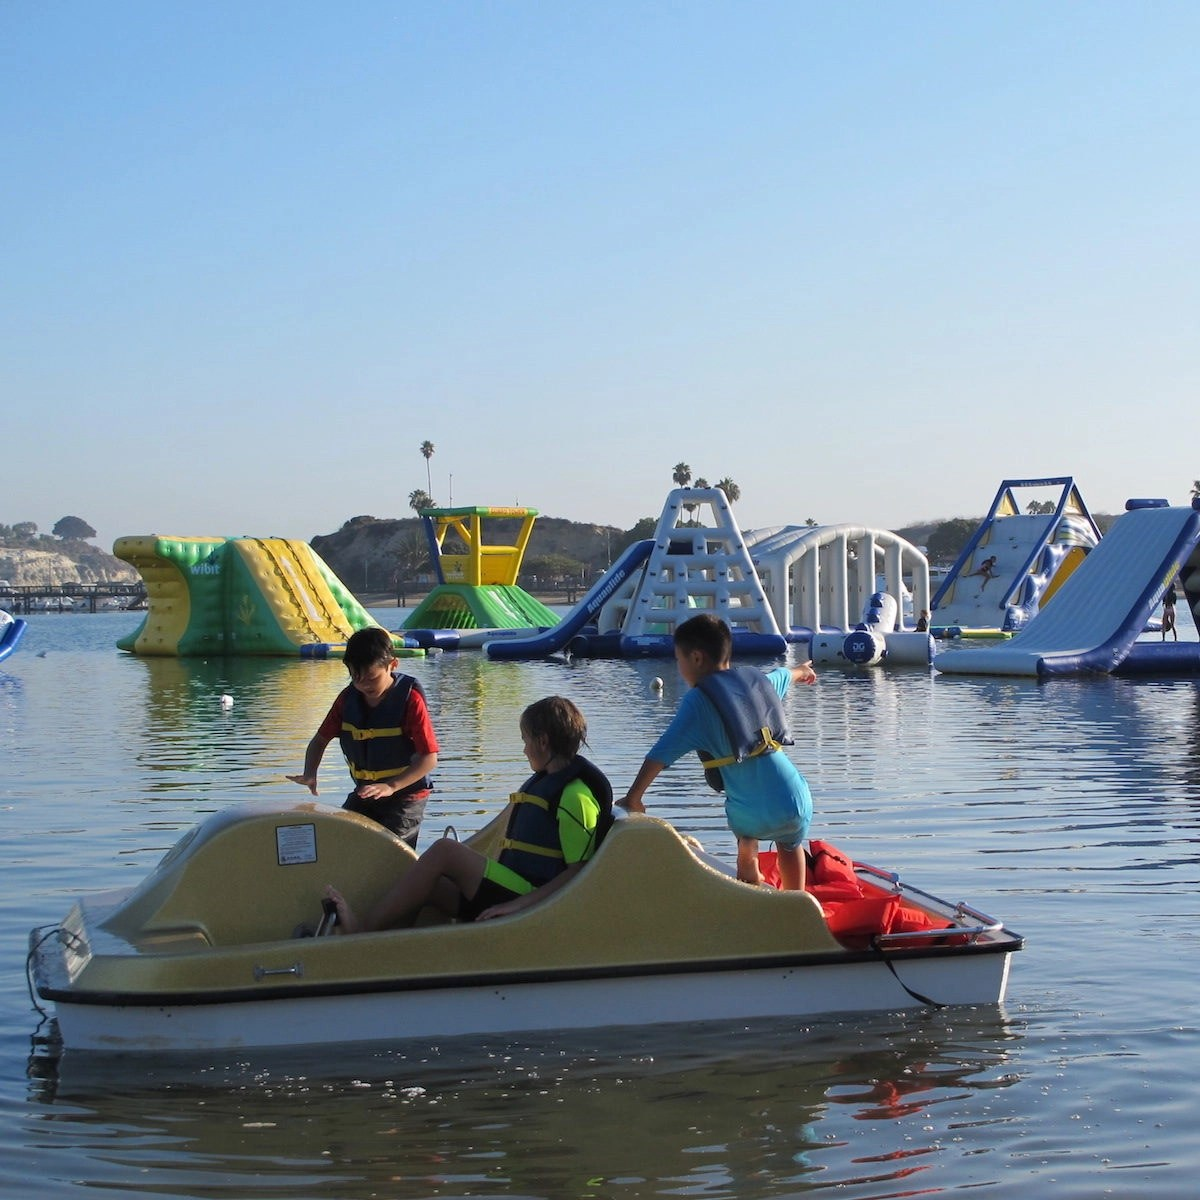 family-friendly fun on pedal boats